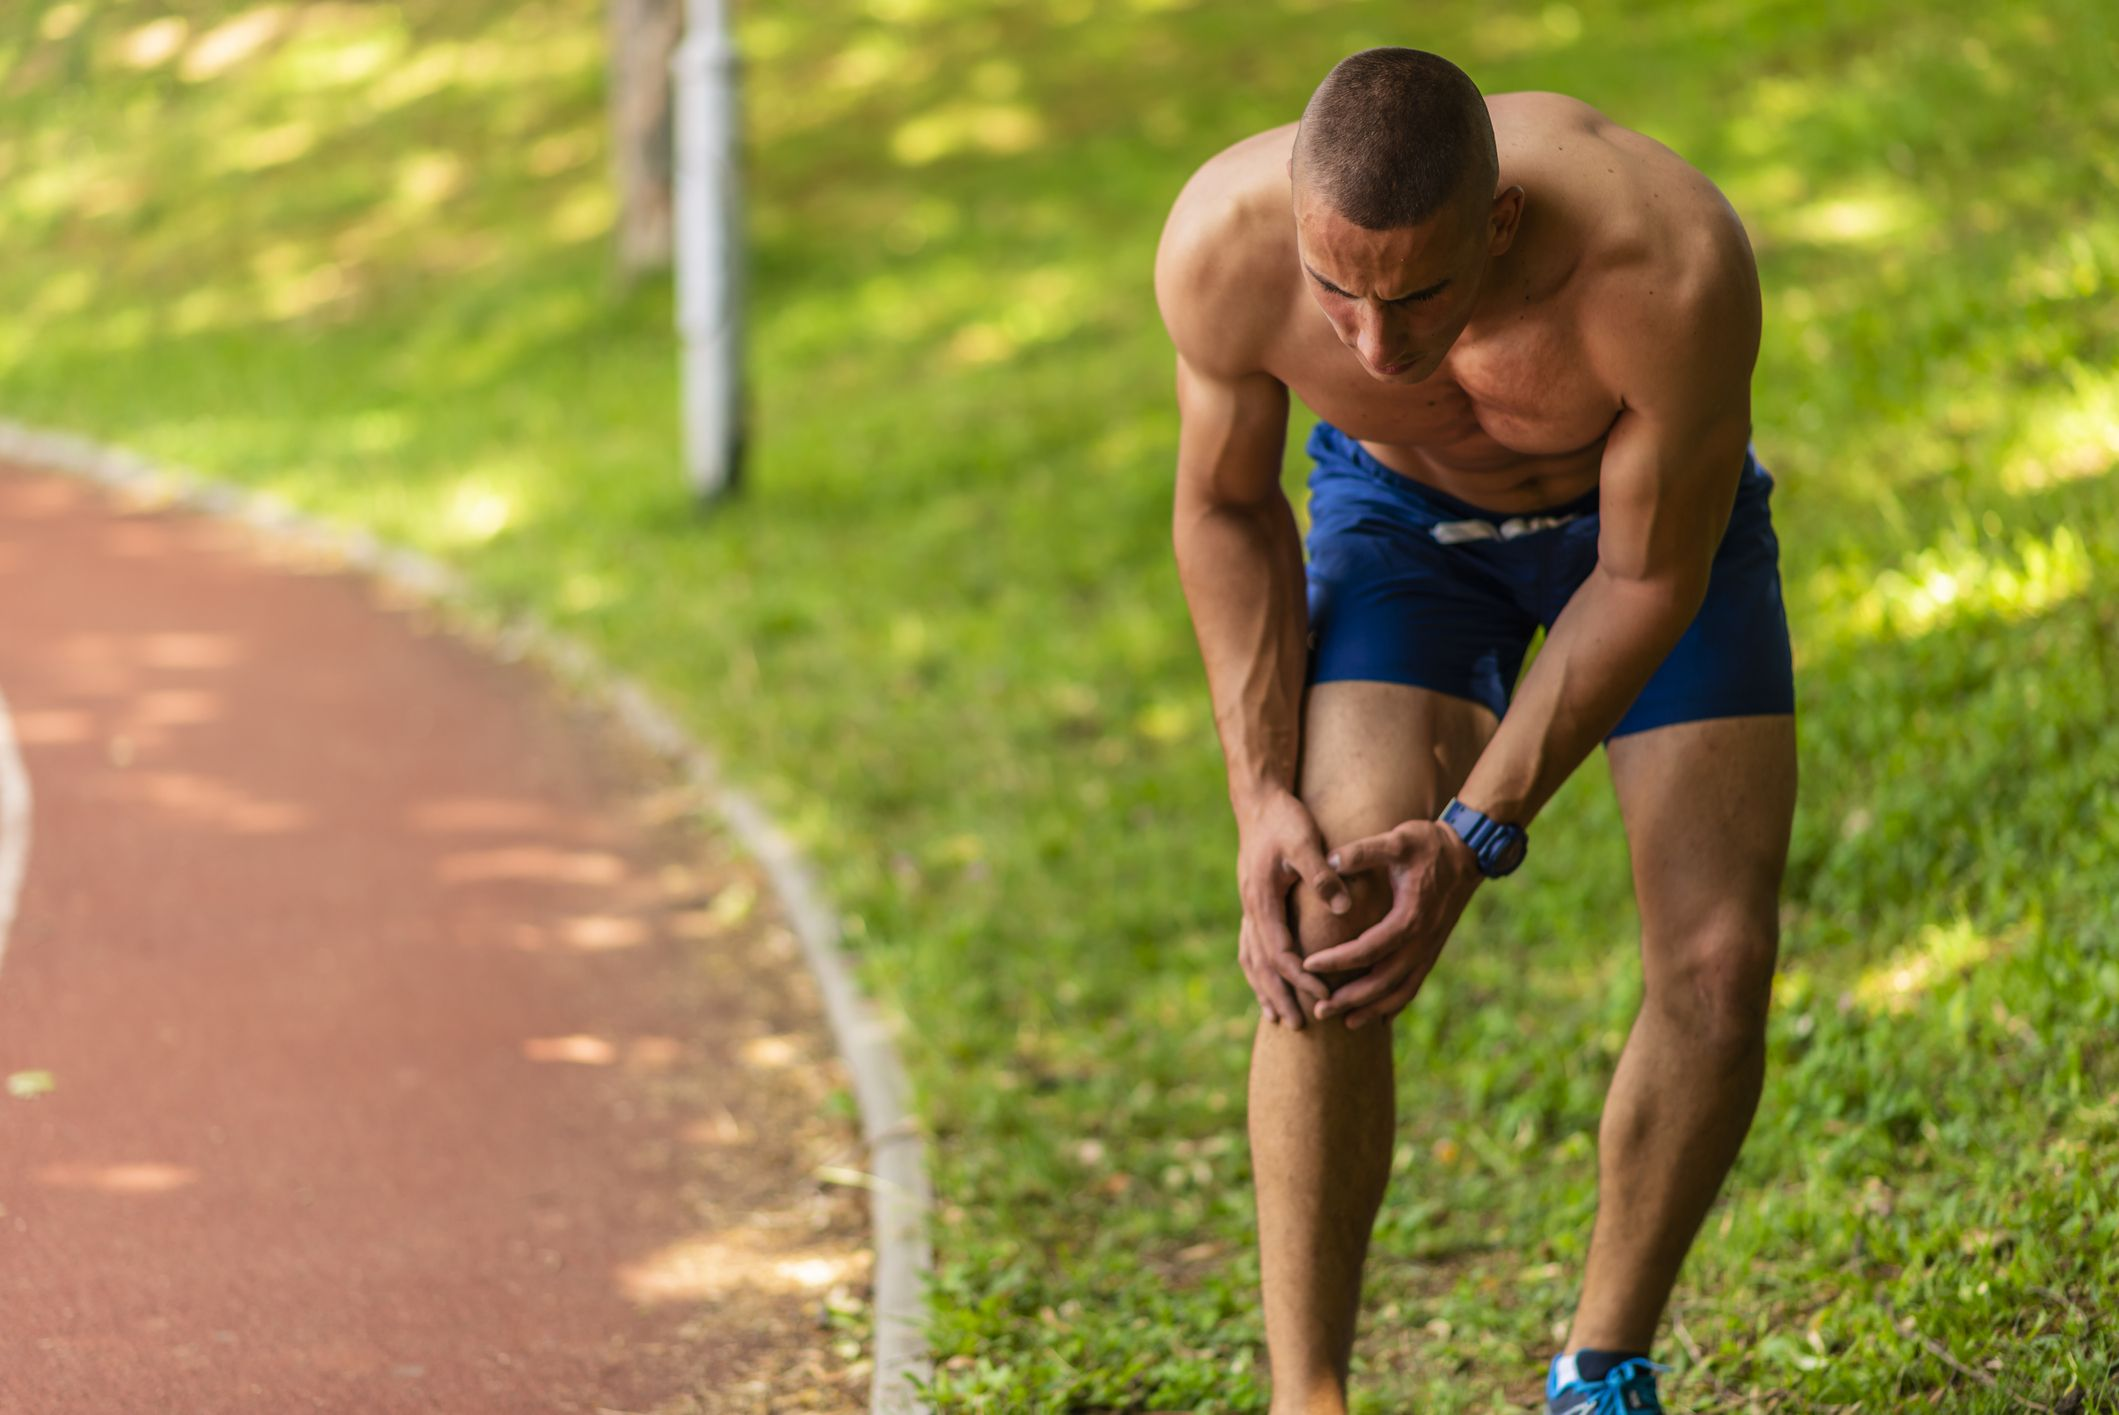 How to Deal With Pain From Runner's Knee